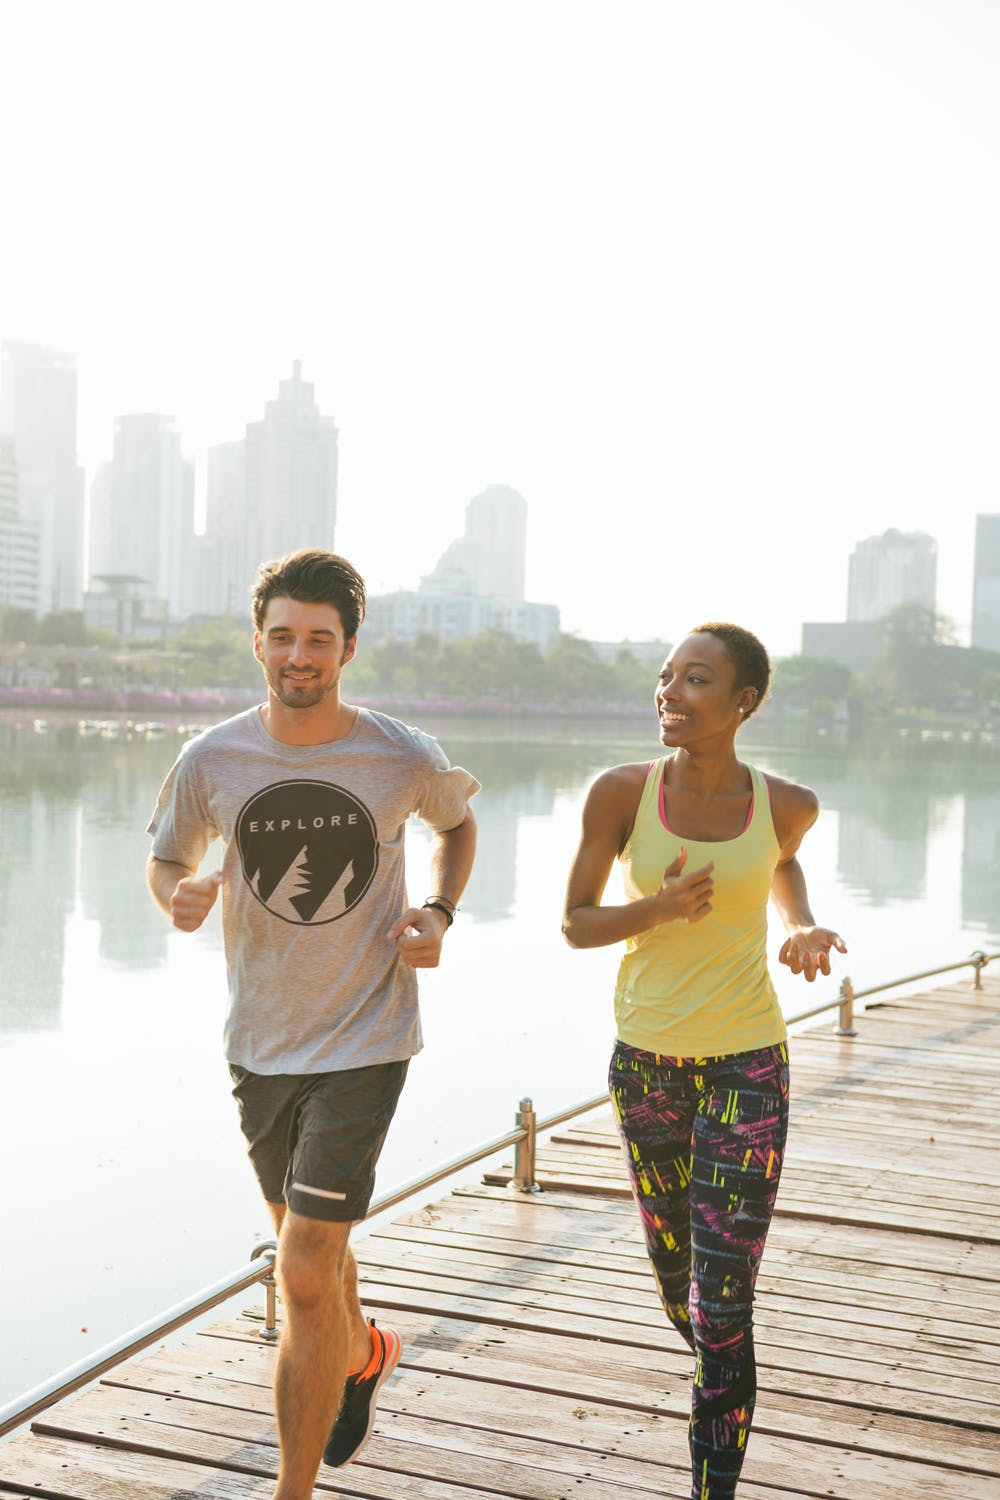 Healthy Lifestyle: 10 Tips to Apply to Improve Your Academic Performance